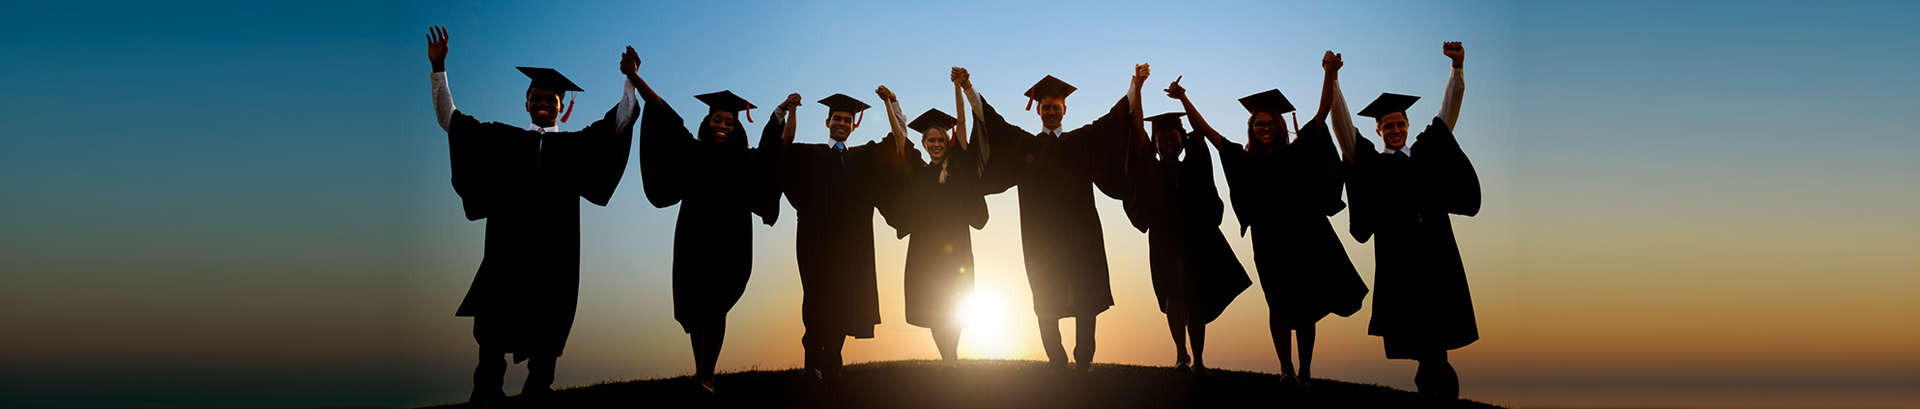 This is an image of students celebrating their education.